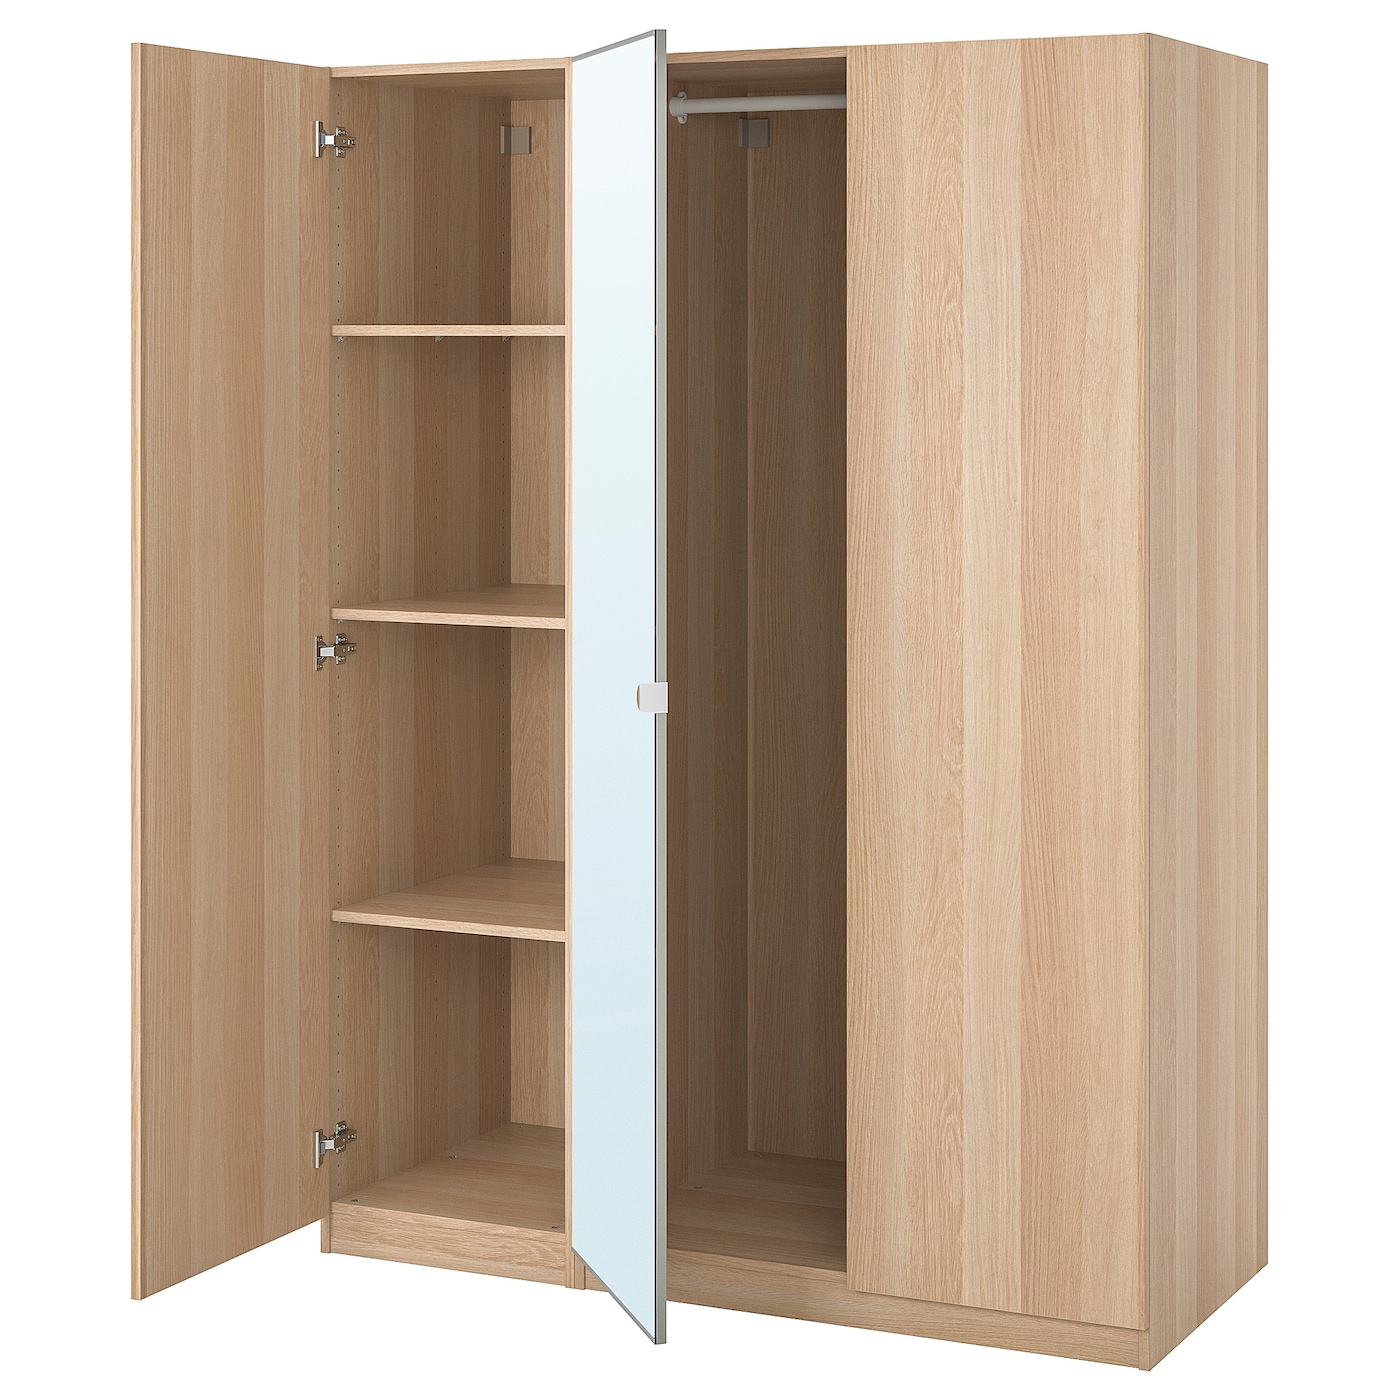 Pax Forsand Vikedal Wardrobe Combination White Stained Oak Effect Mirror Glass Ikea